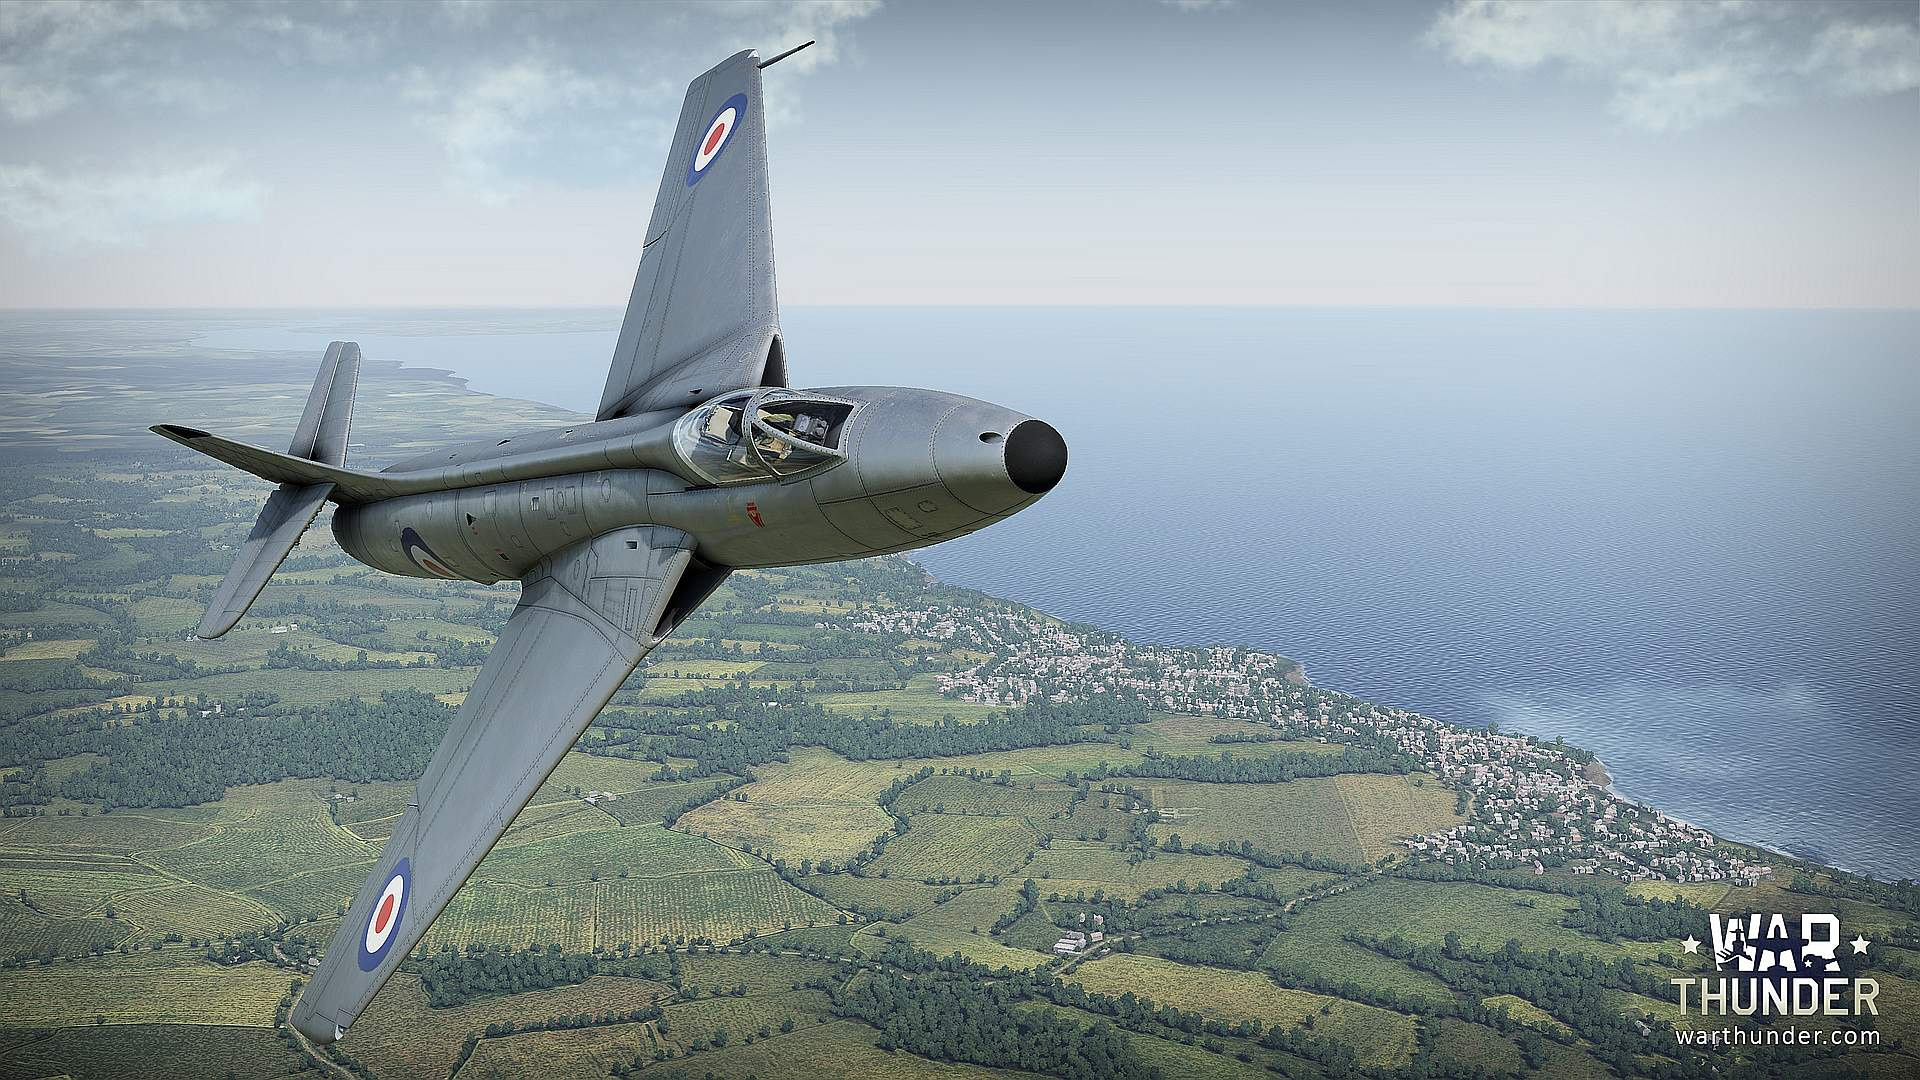 hawker hunter war thunder